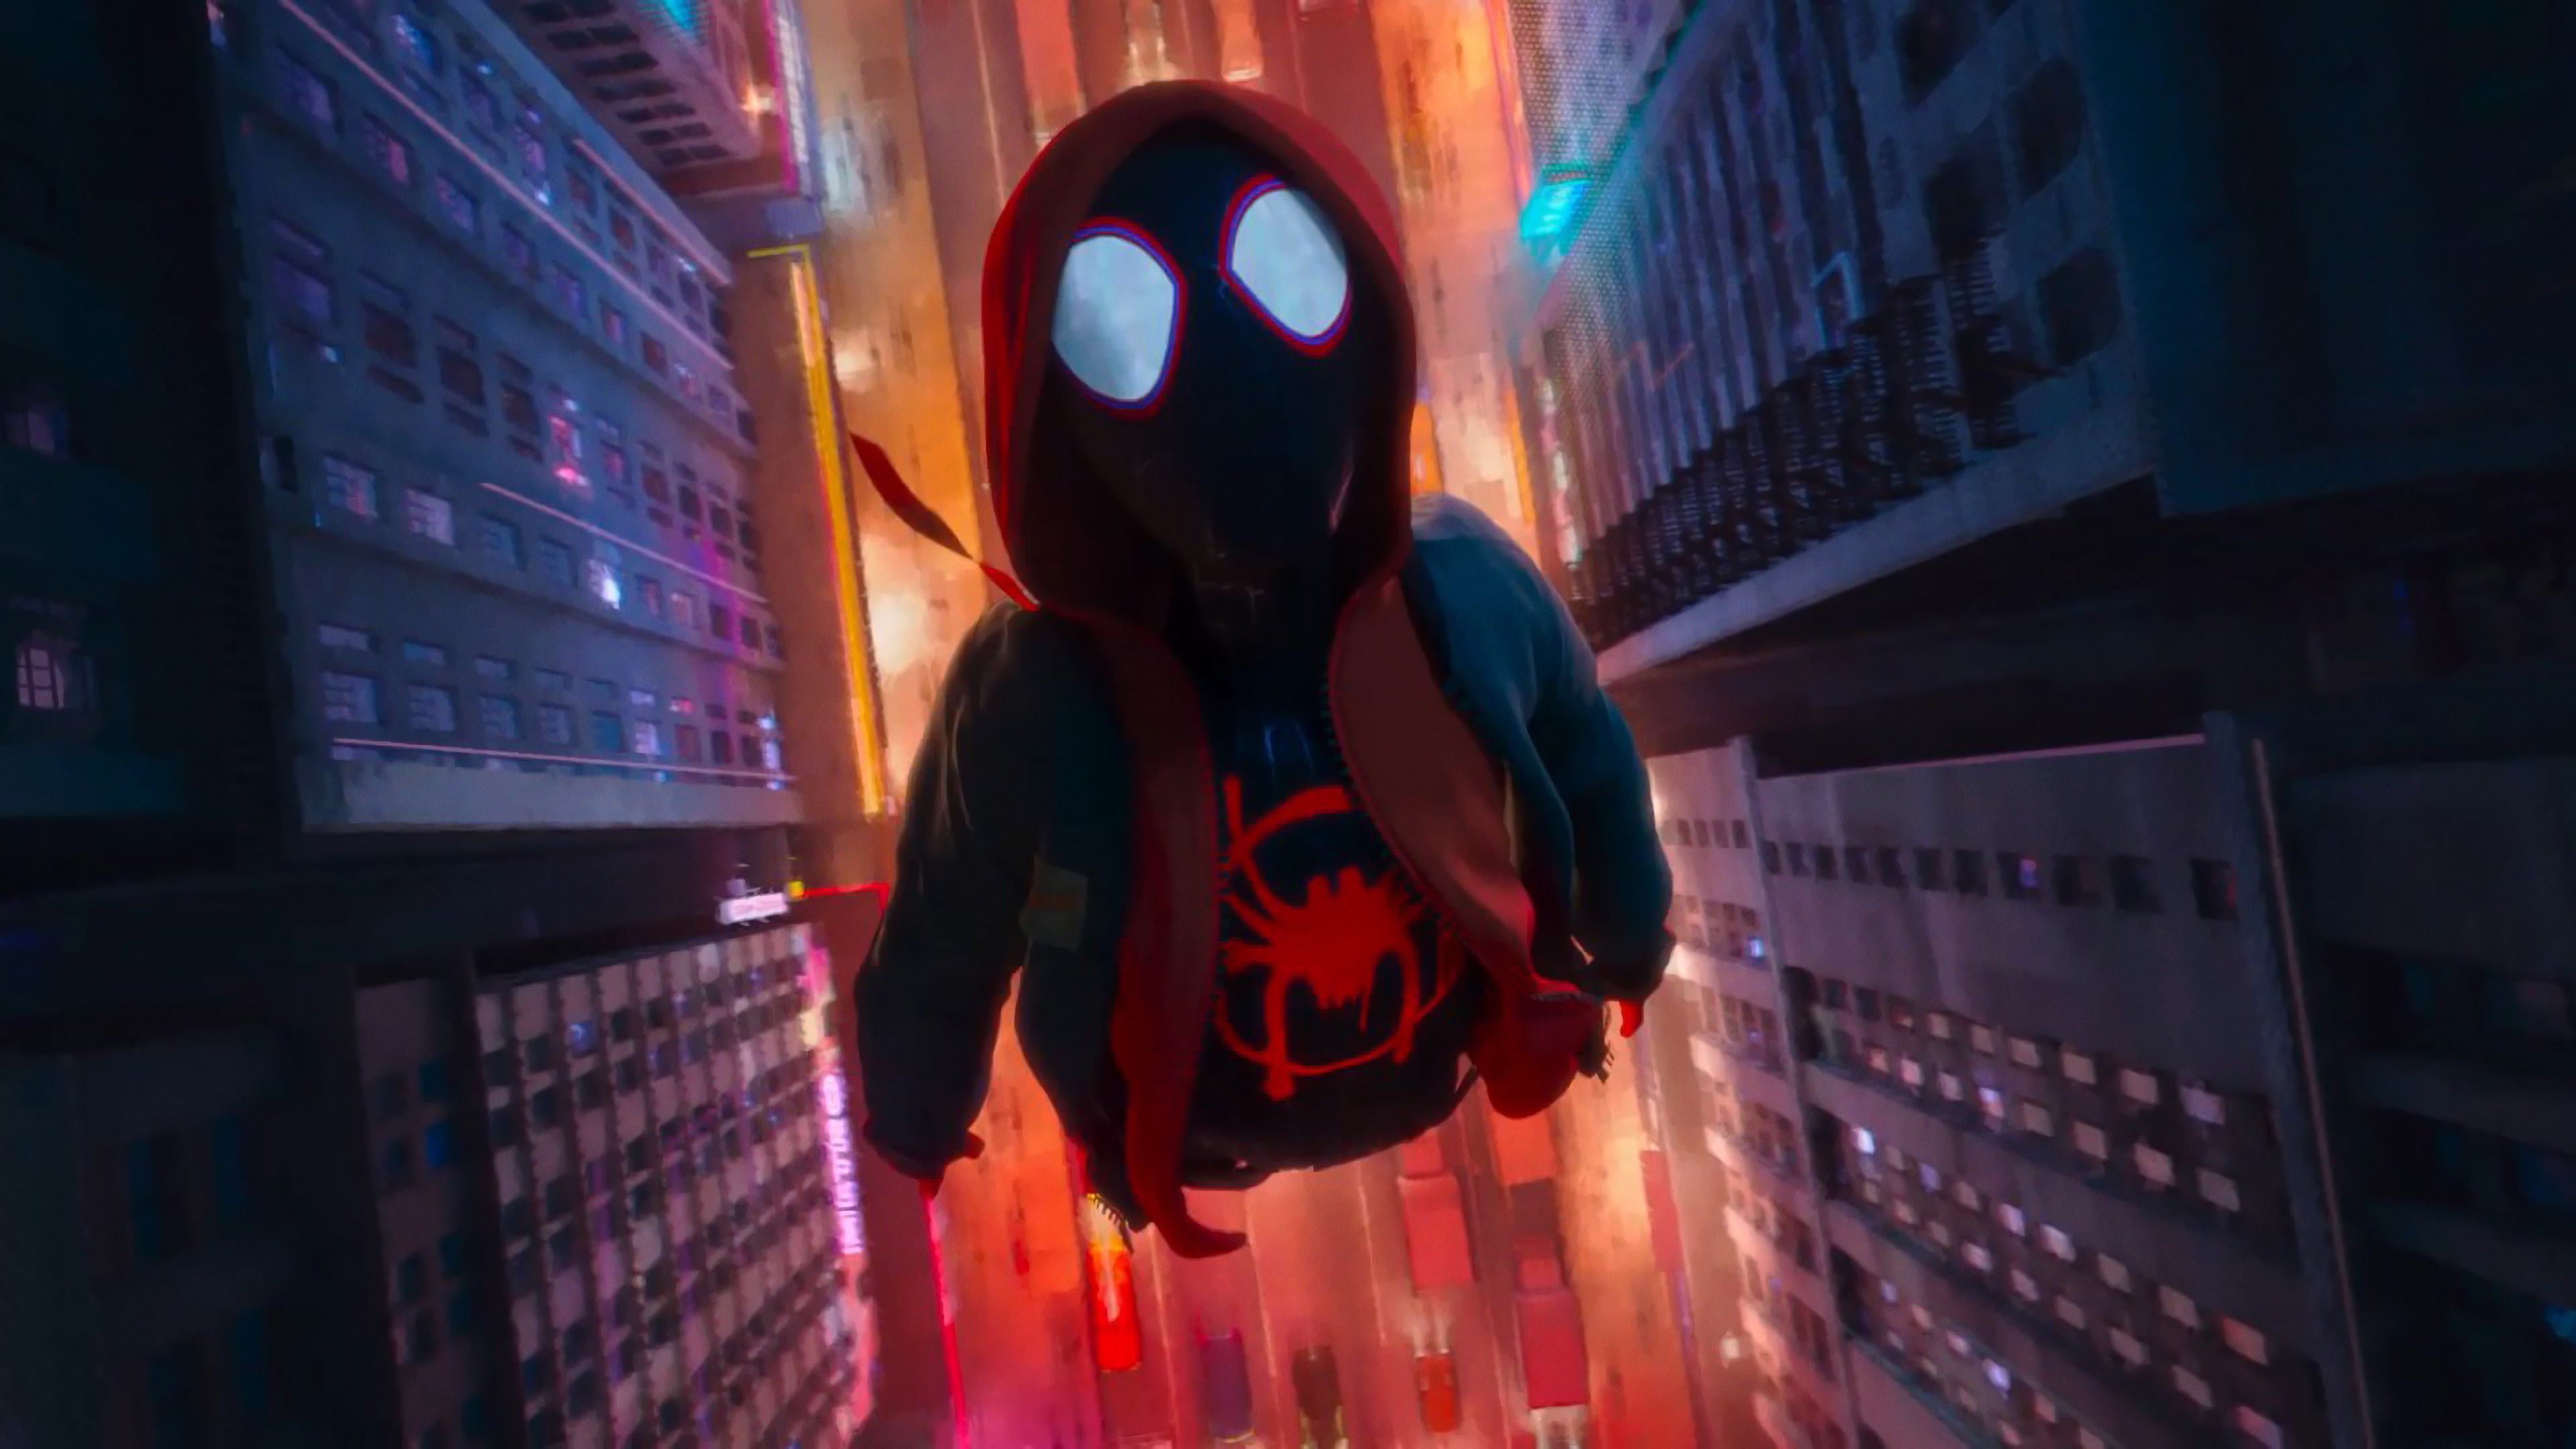 miles morales in spider man into the spider verse movie 2018 1540747681 - Miles Morales In Spider Man Into The Spider Verse Movie 2018 - spiderman wallpapers, spiderman into the spider verse wallpapers, movies wallpapers, hd-wallpapers, animated movies wallpapers, 4k-wallpapers, 2018-movies-wallpapers